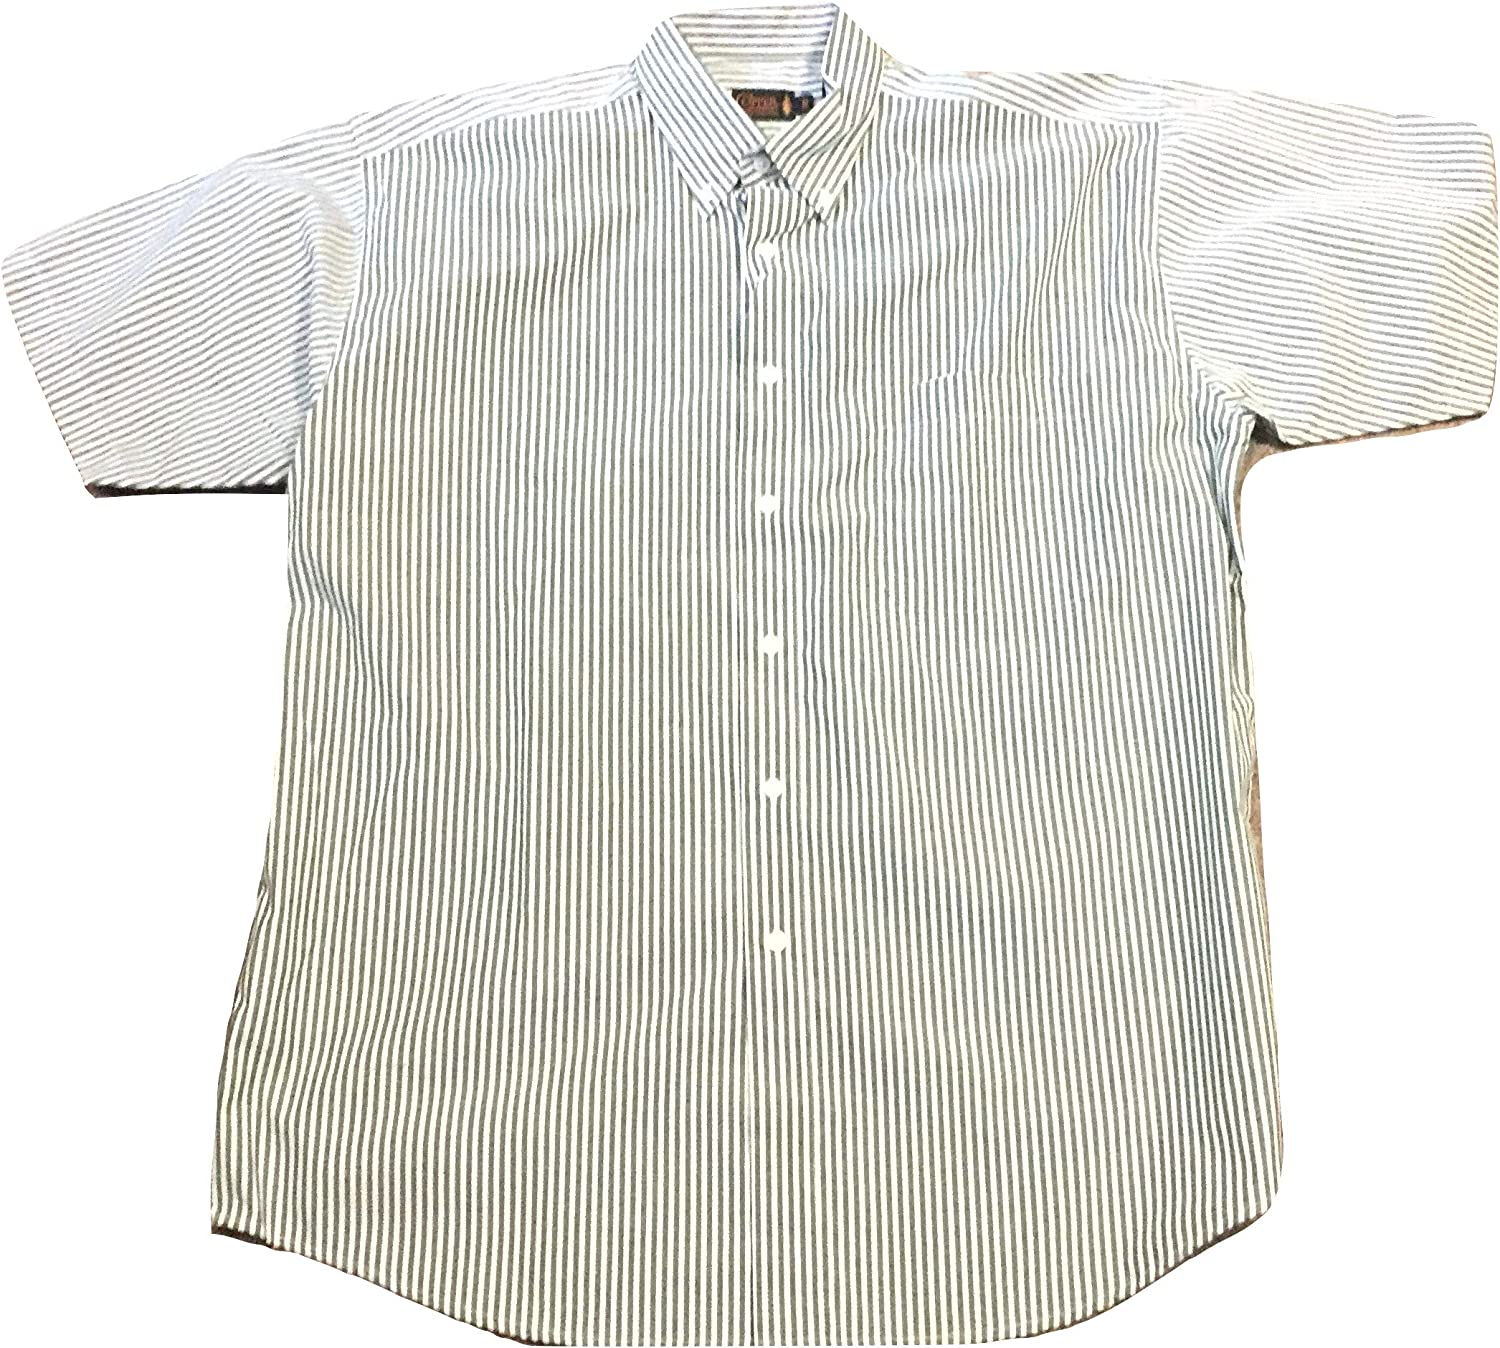 Copper Canyon Bengal Stripe Button Down Short Sleeve Big and Tall Casual Shirt